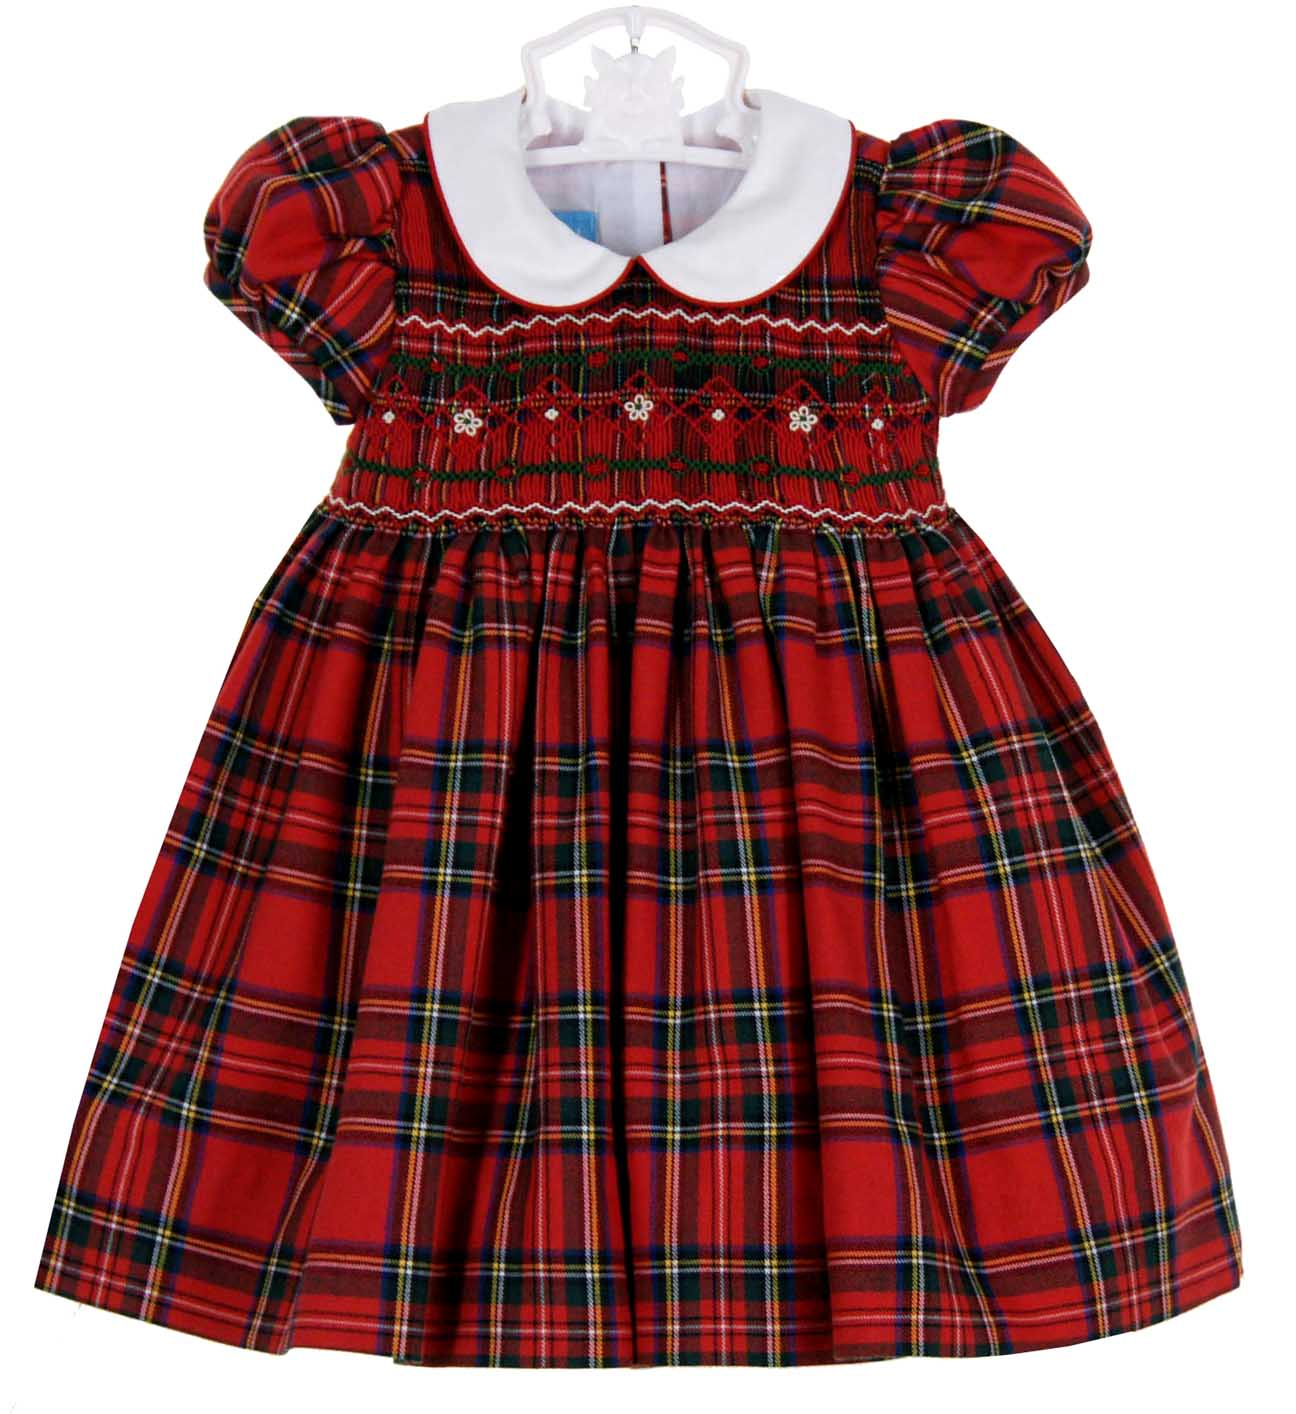 Anavini Smocked Dresses